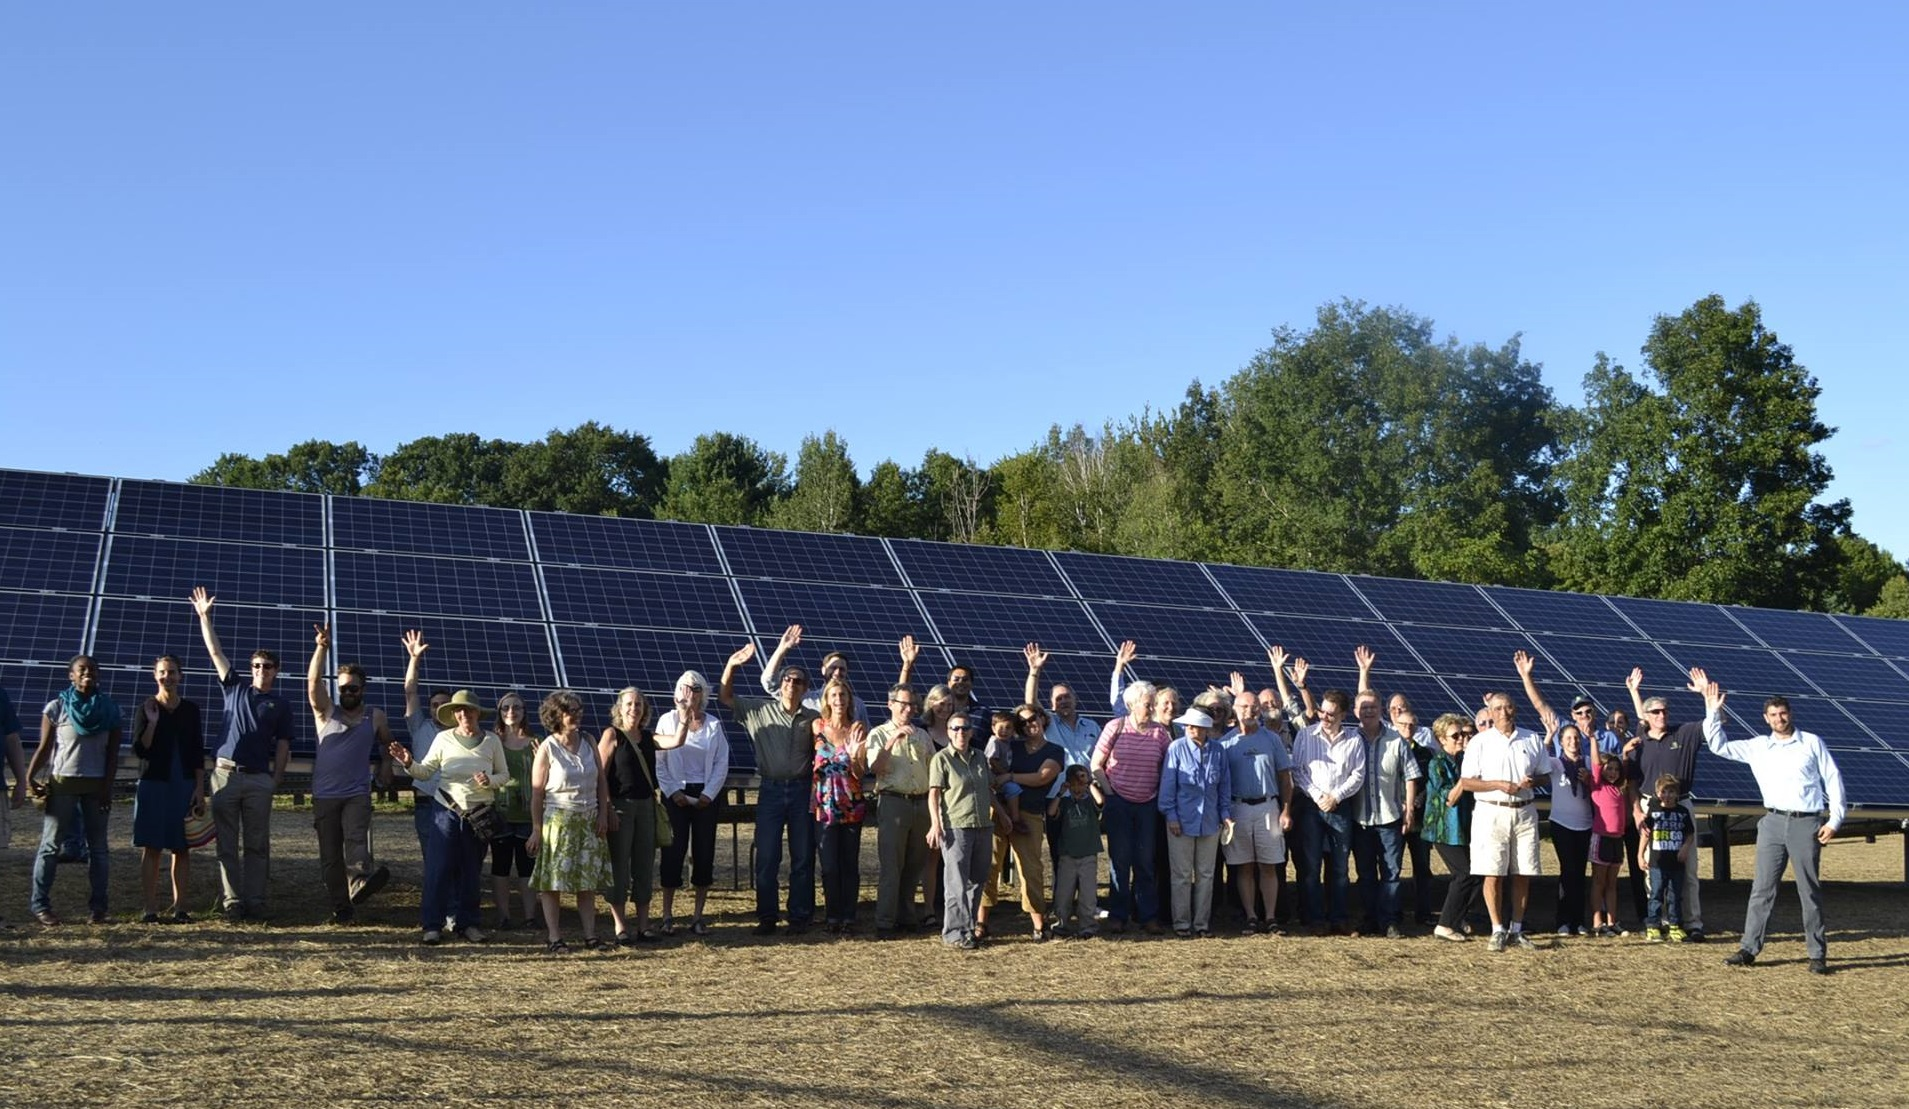 Group of people in front of solar panels